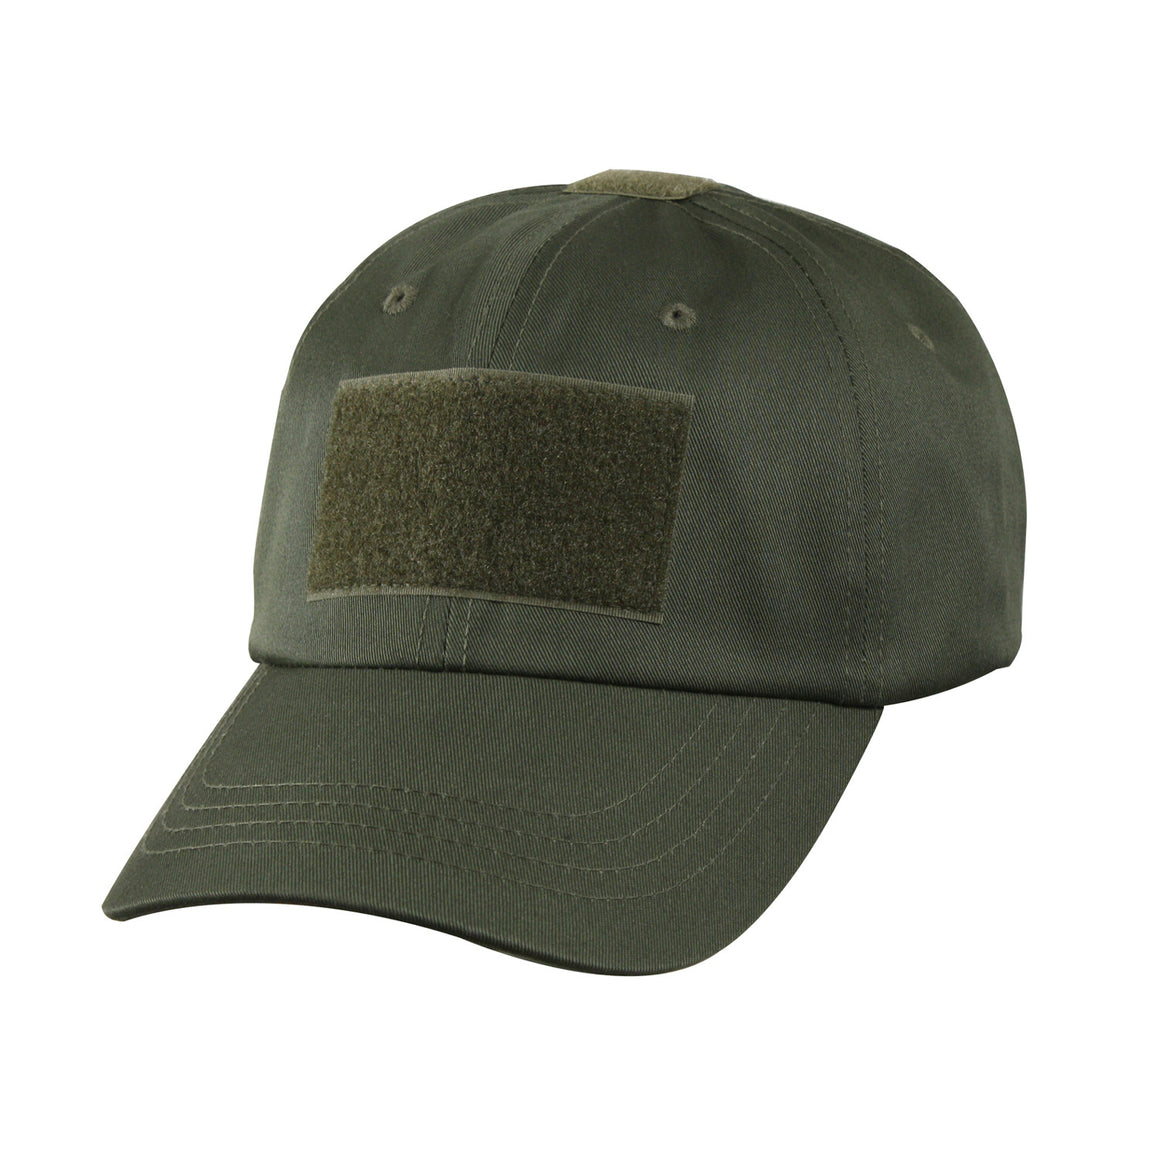 Zoo Tactical - Rothco Tactical Operator Hat